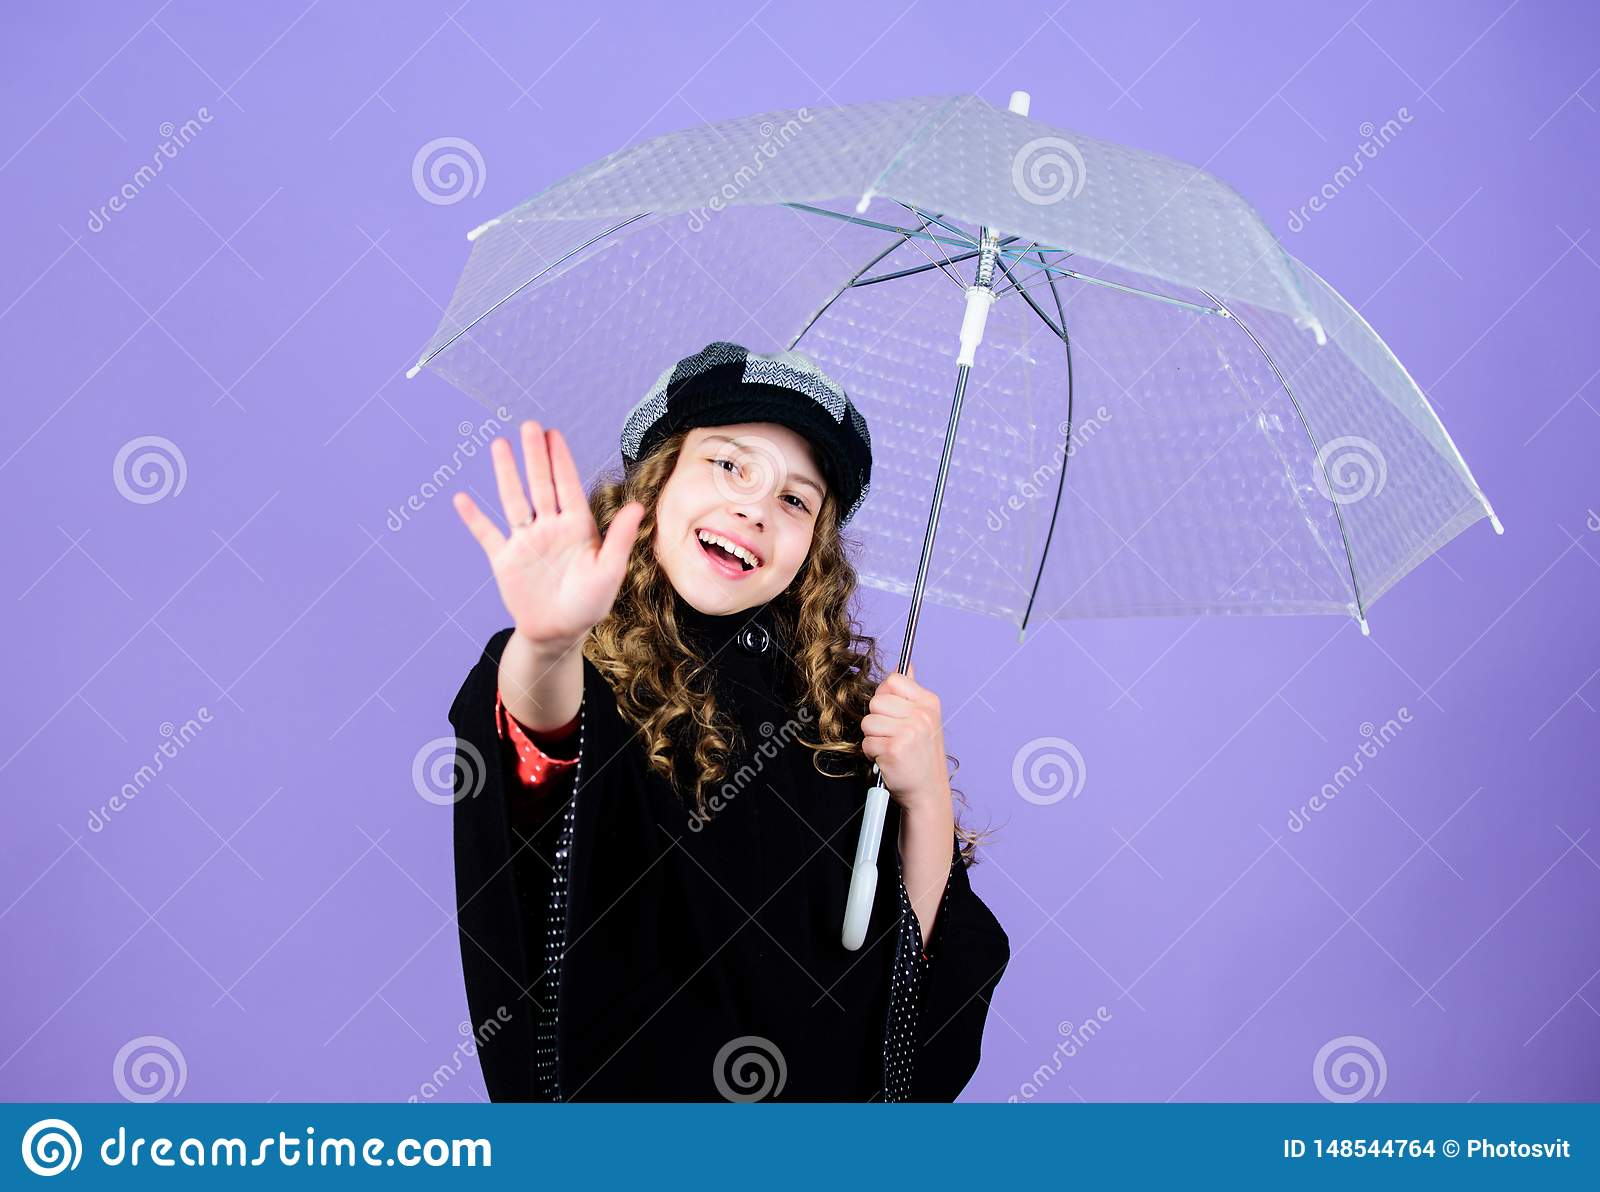 Kid girl happy hold transparent umbrella. Enjoy rainy weather with proper garments. Waterproof accessories make rainy